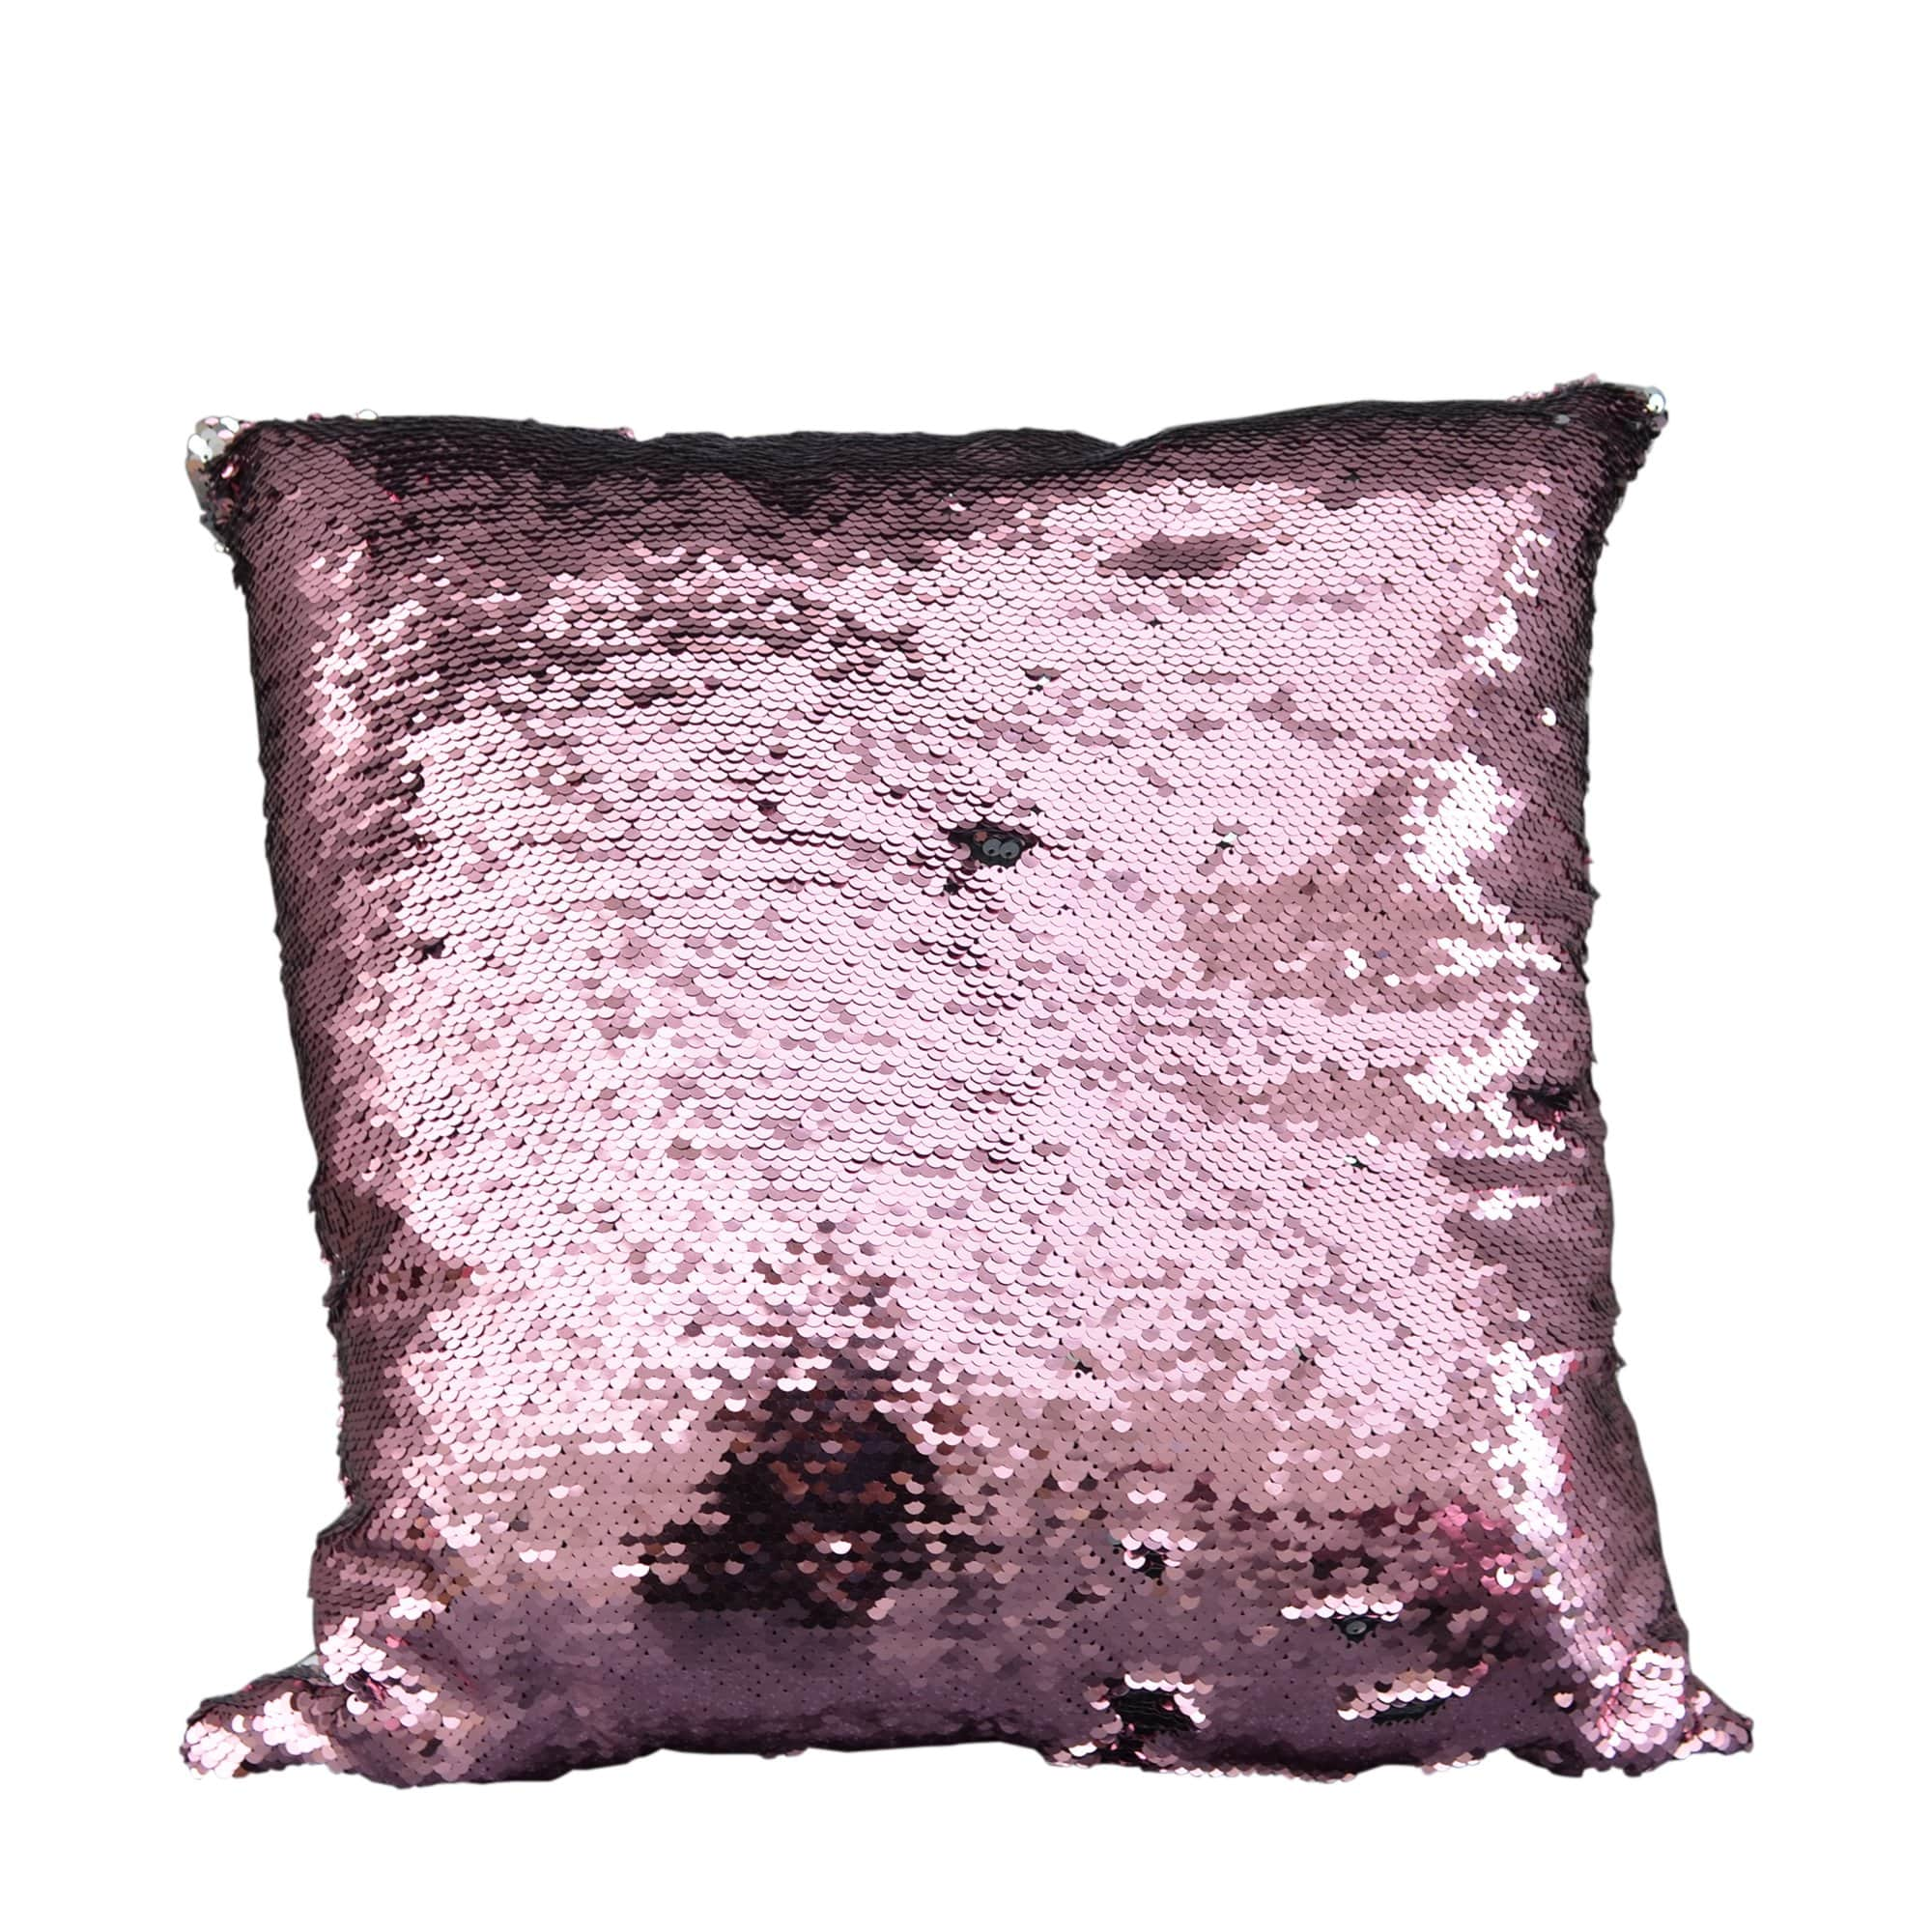 Candlelight Home Cushions Sequin Covered Large Cushion Cover Silver and Pink 45cm 1PK